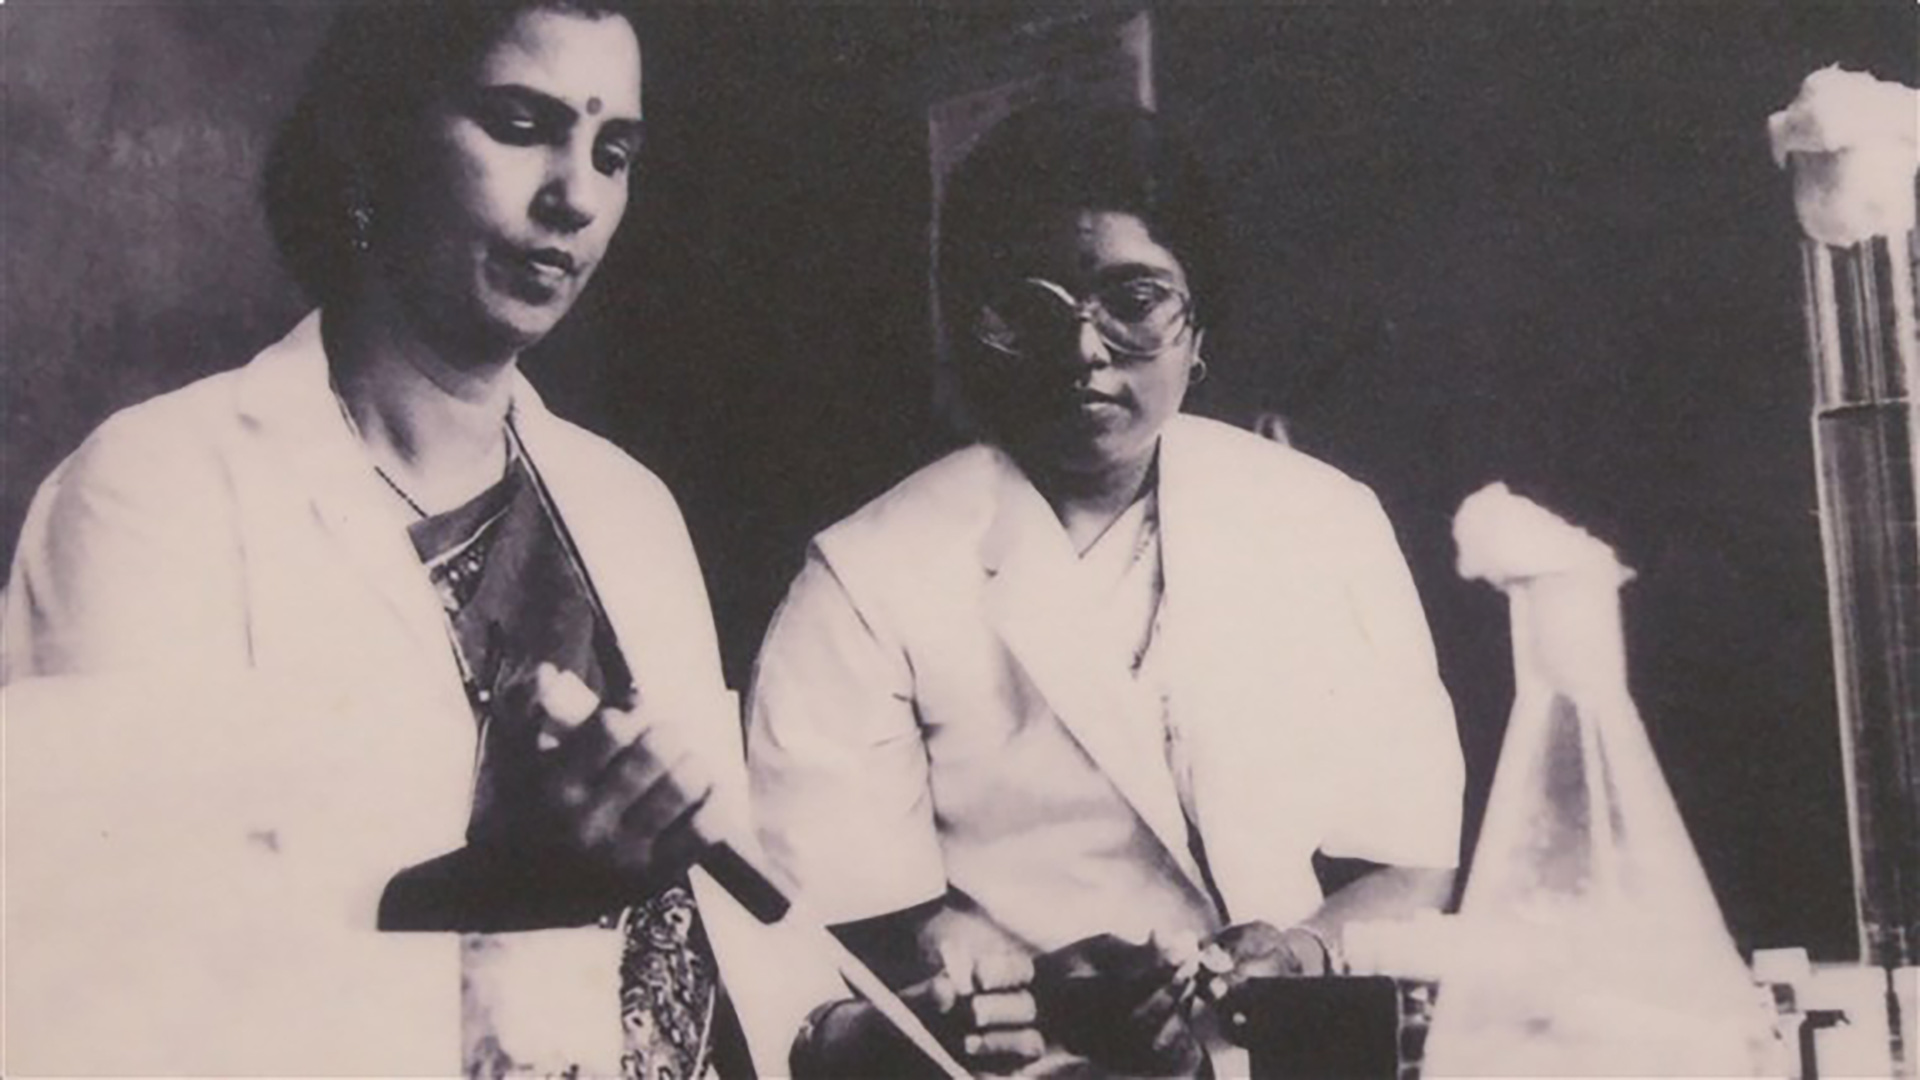 vintage photo of two Indian women in lab coats performing an experiment